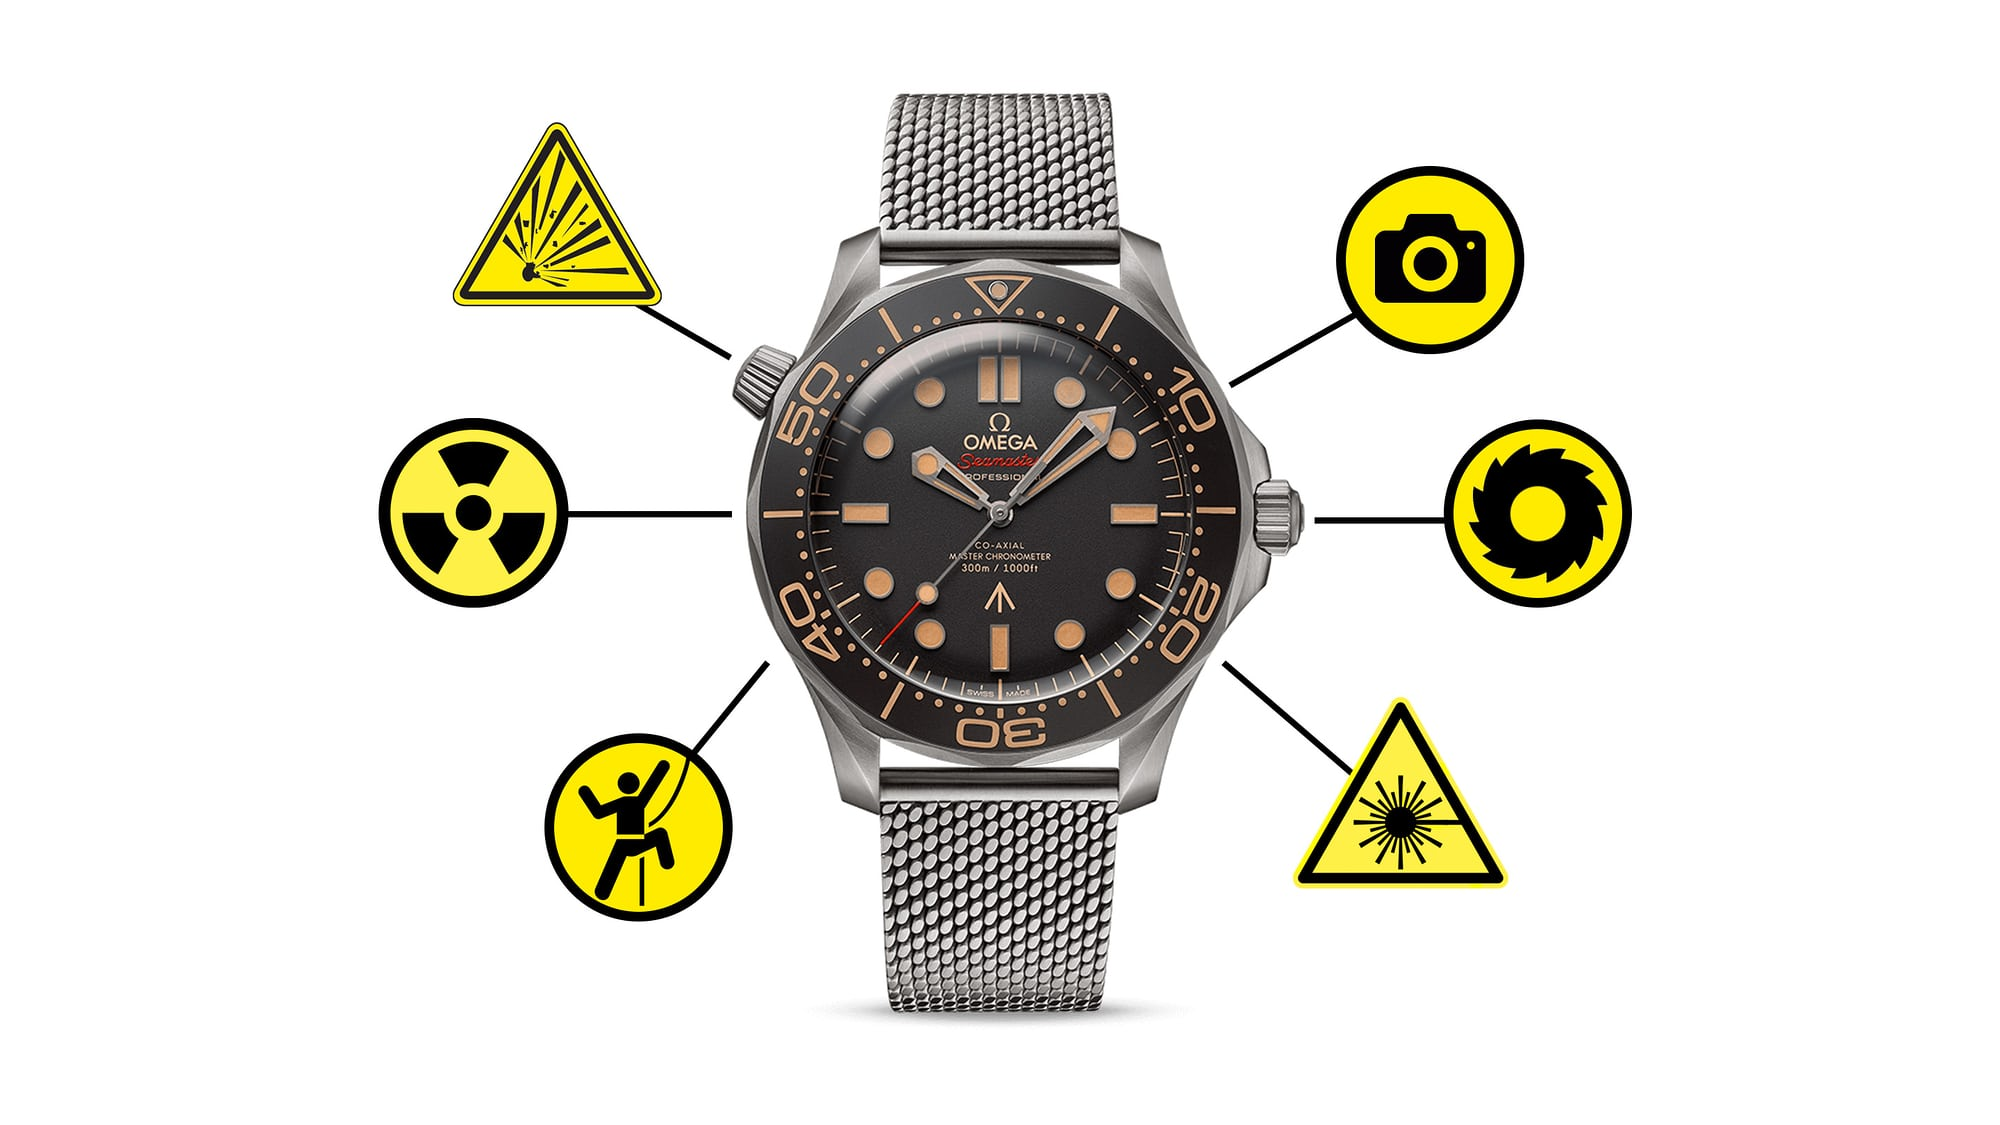 Editors' Picks: Our Favorite James Bond Gadget Watches